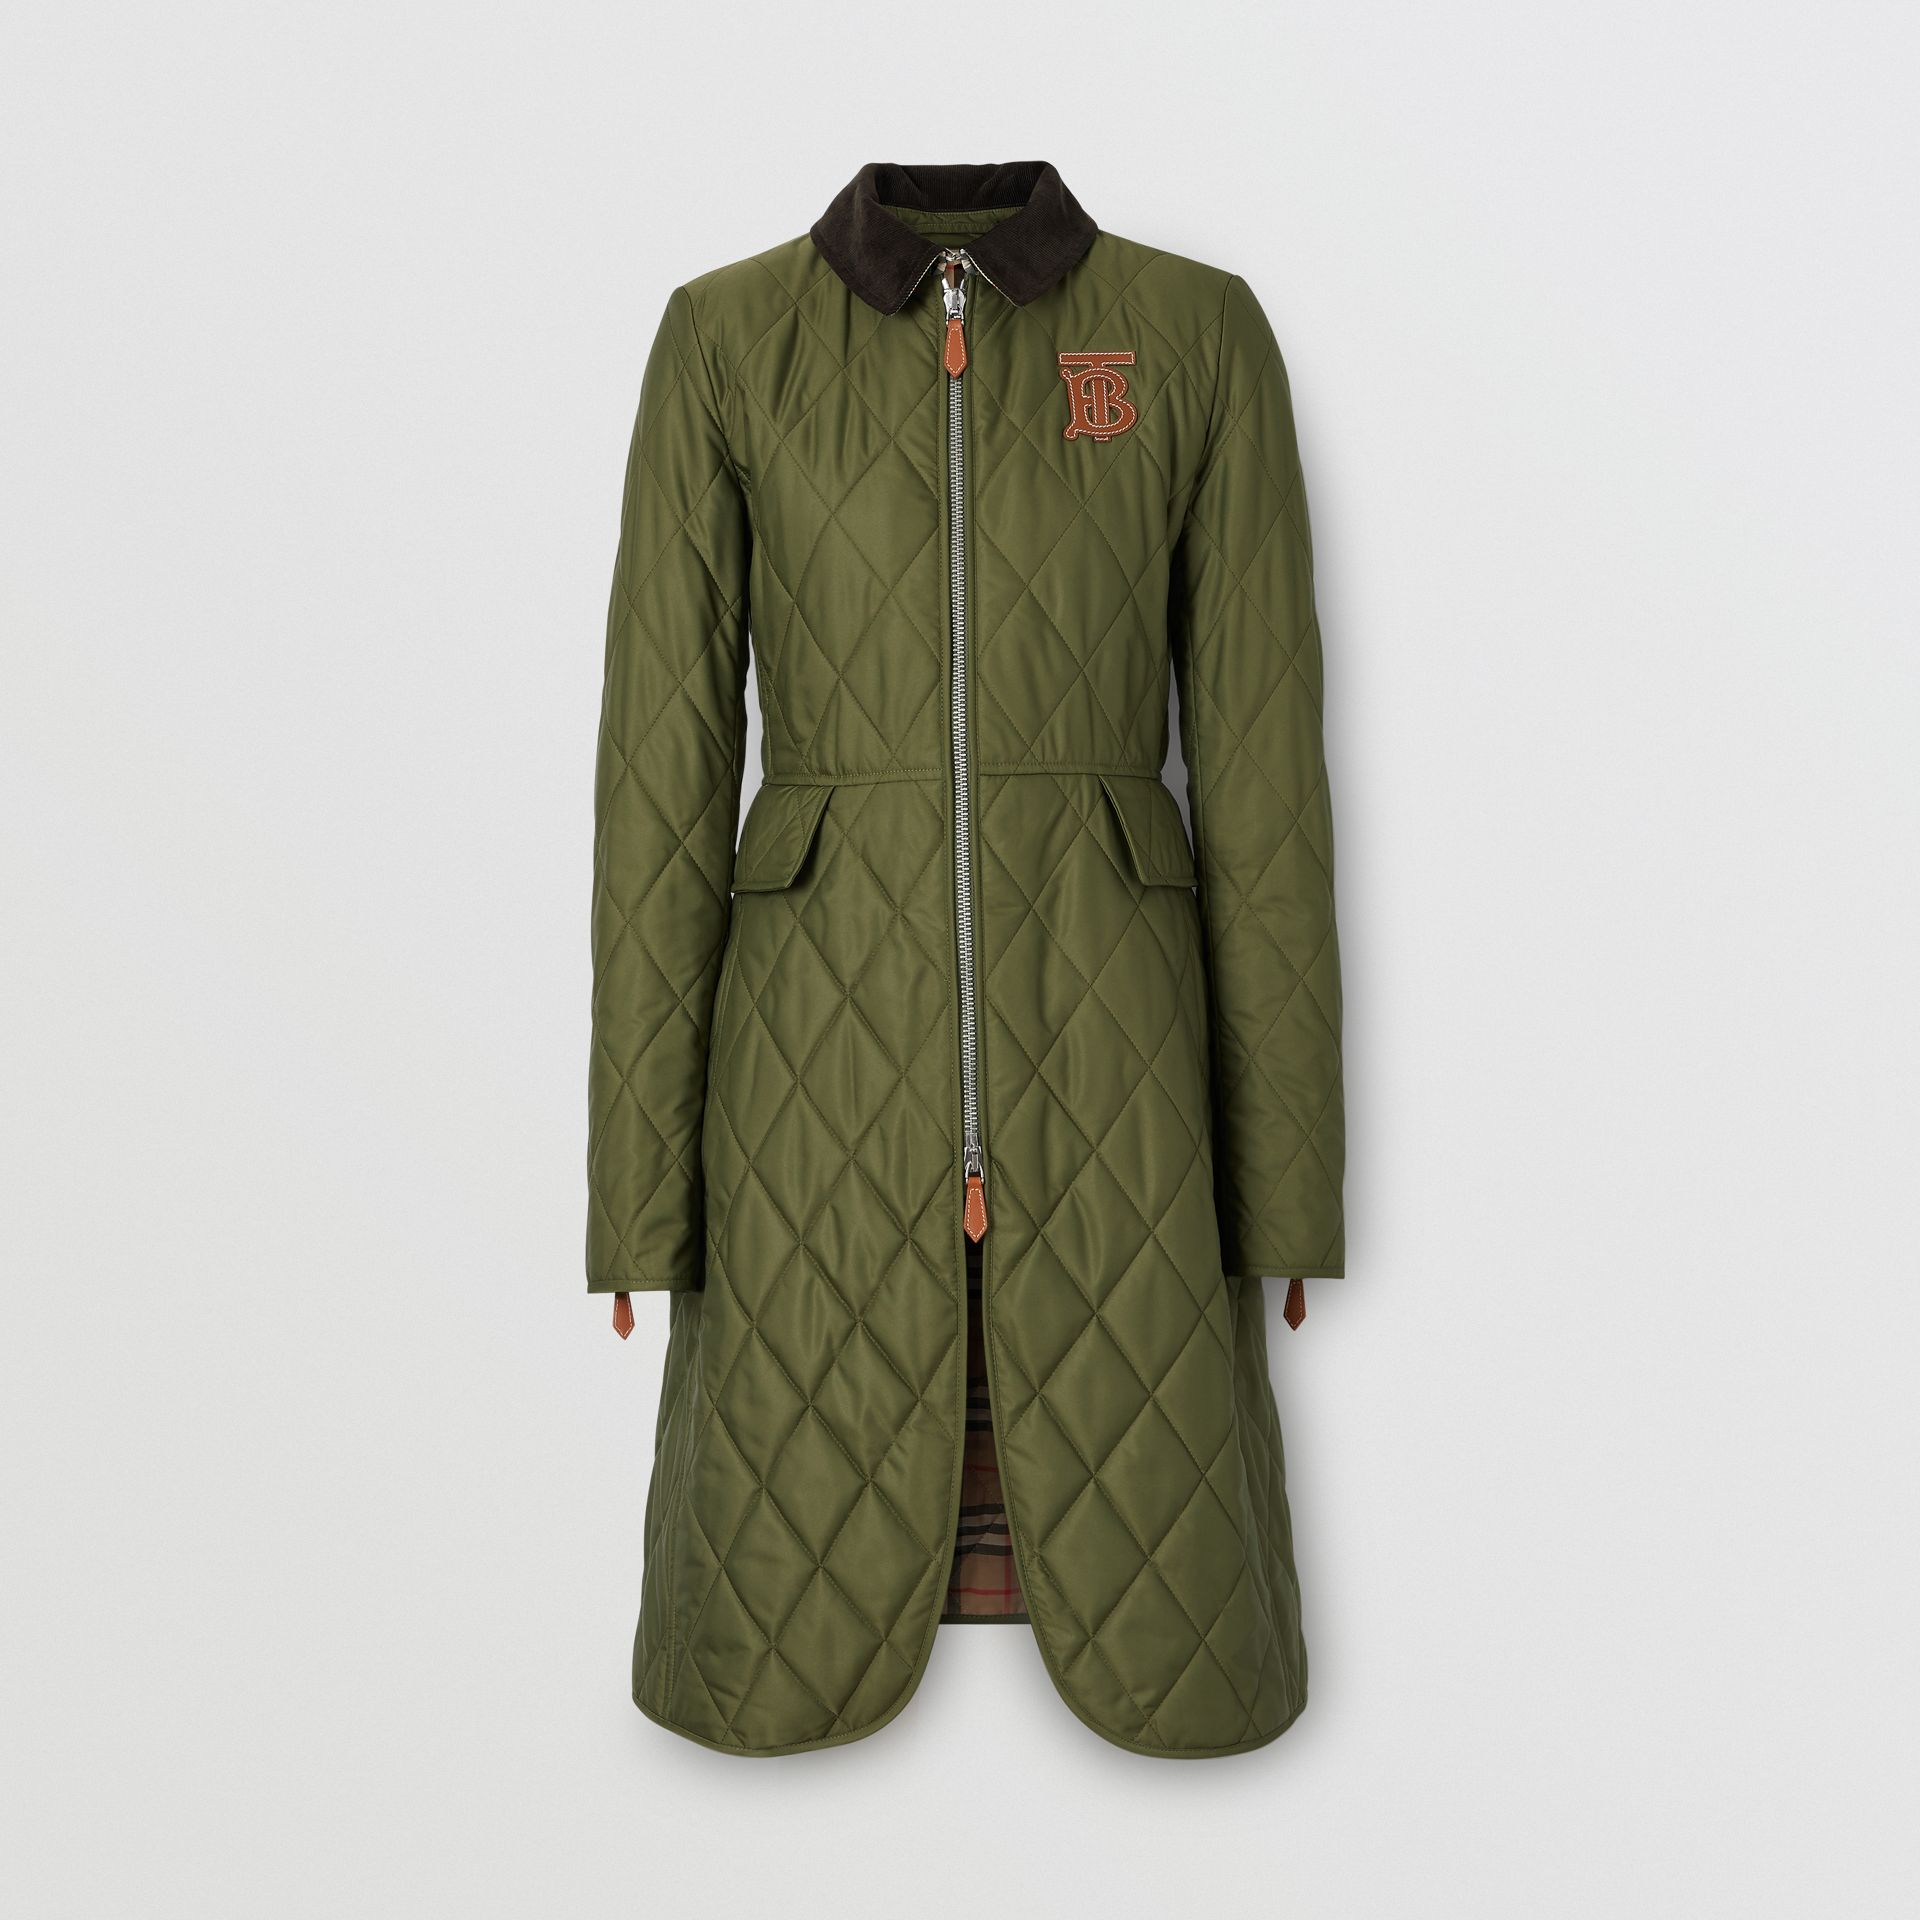 Monogram Motif Quilted Riding Coat in Utility Green - Women | Burberry - gallery image 4